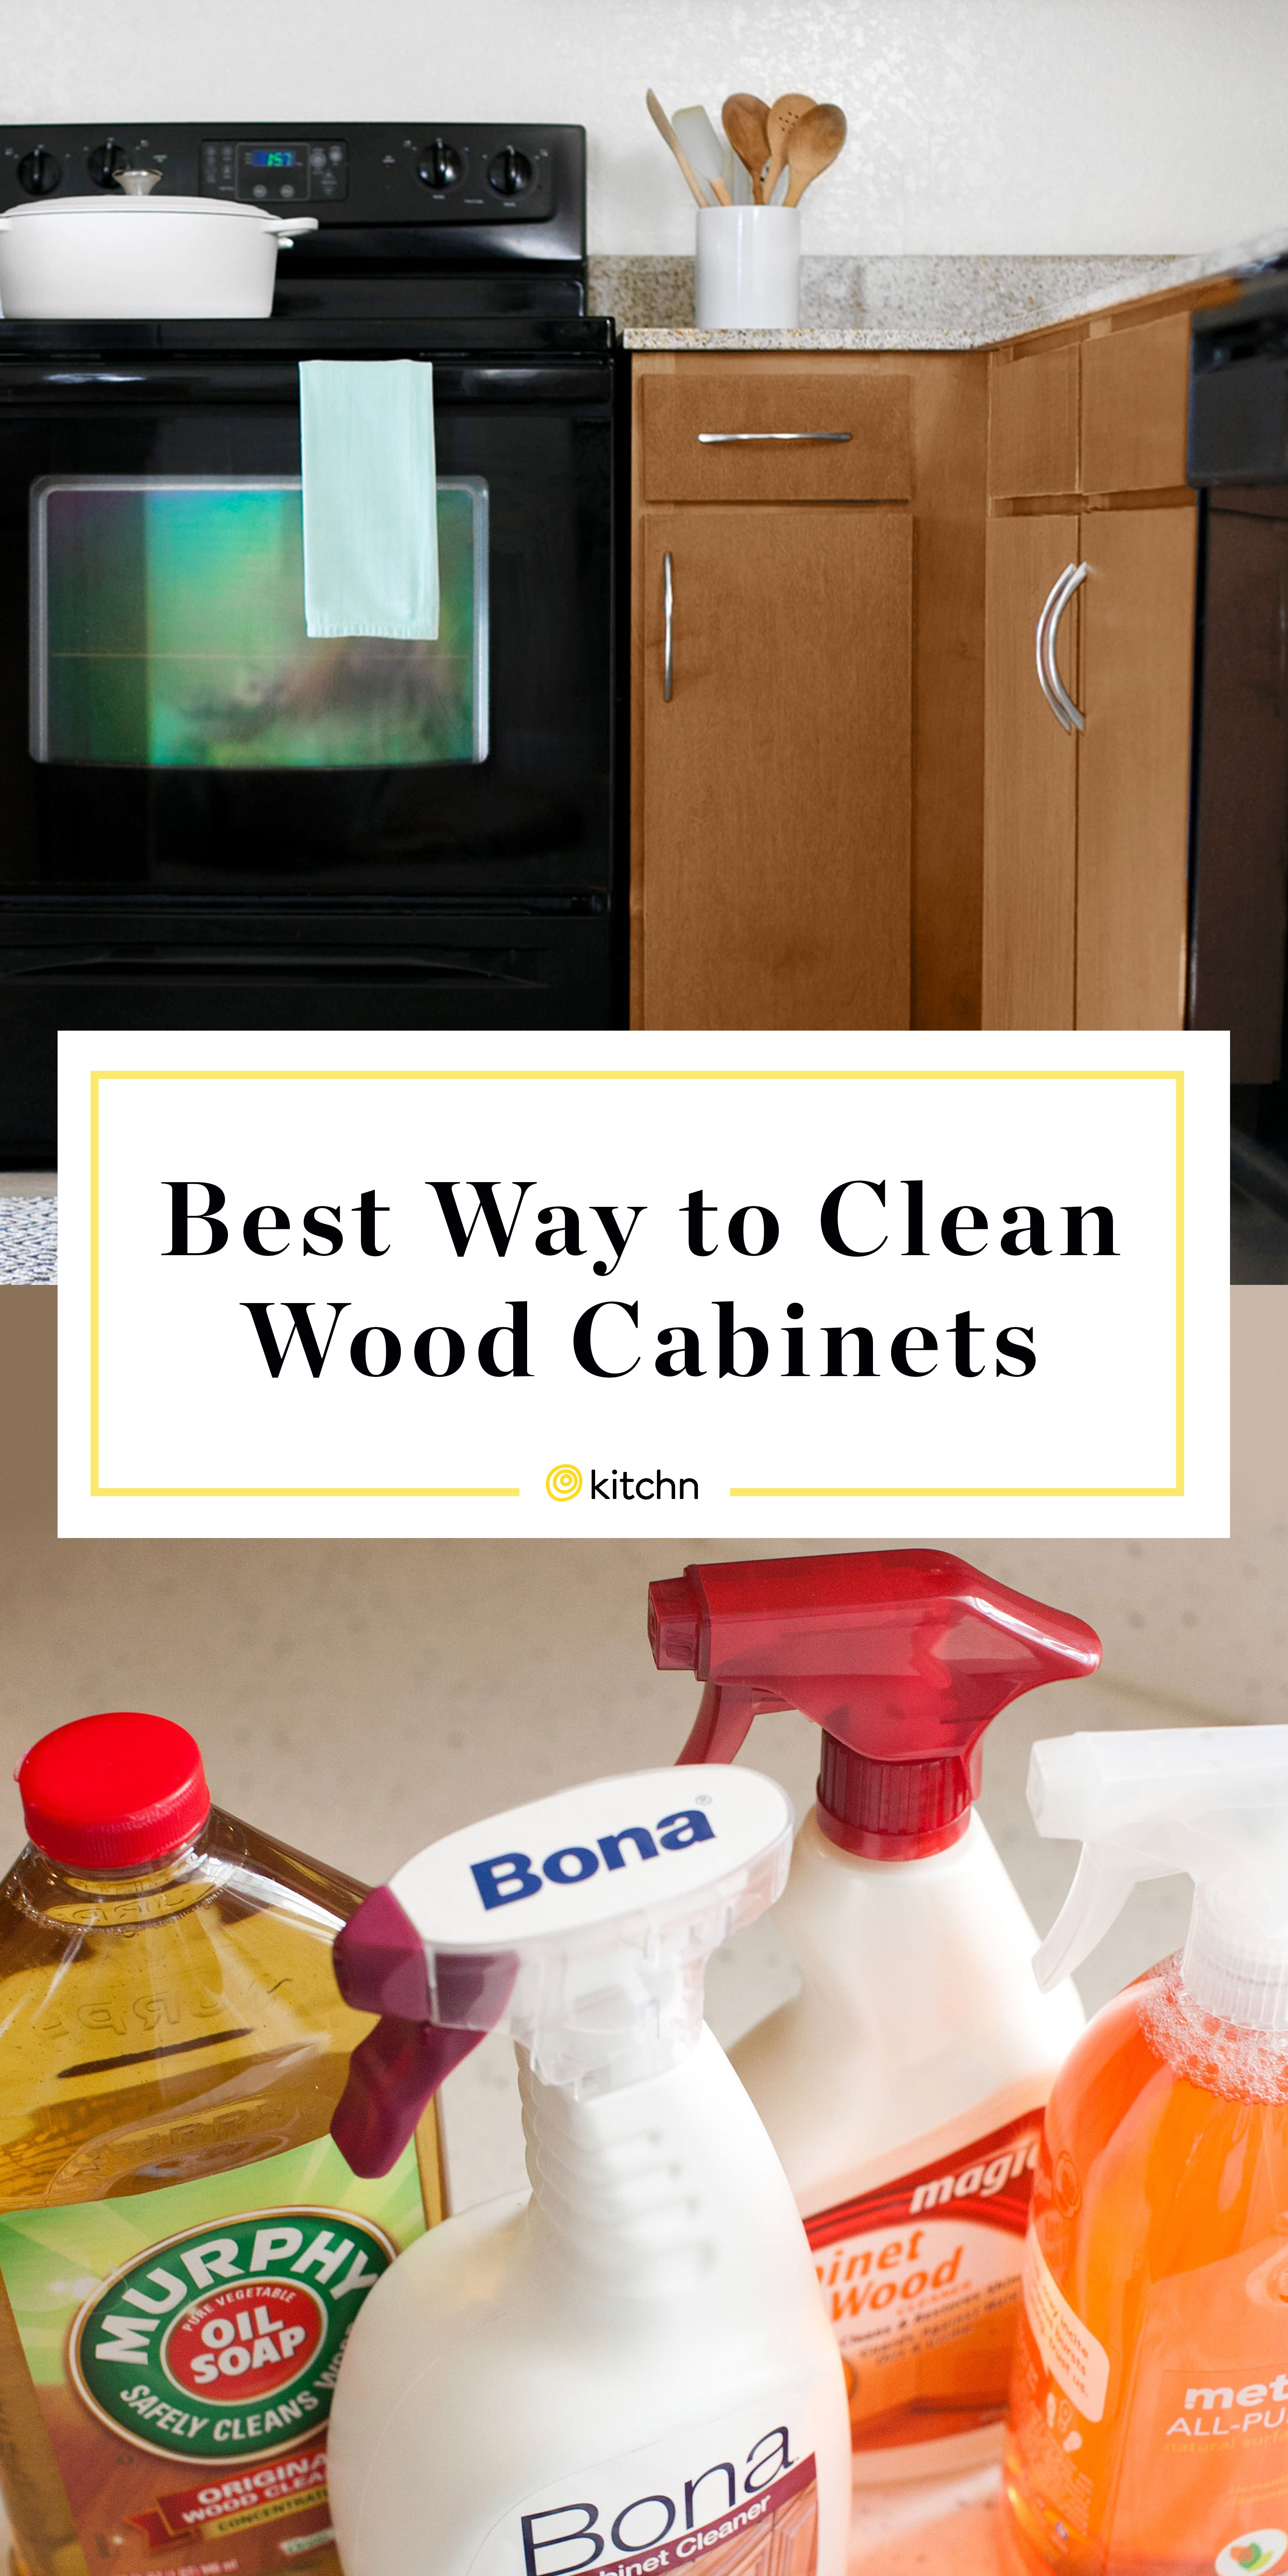 How To Clean Wood Cabinets | Kitchn